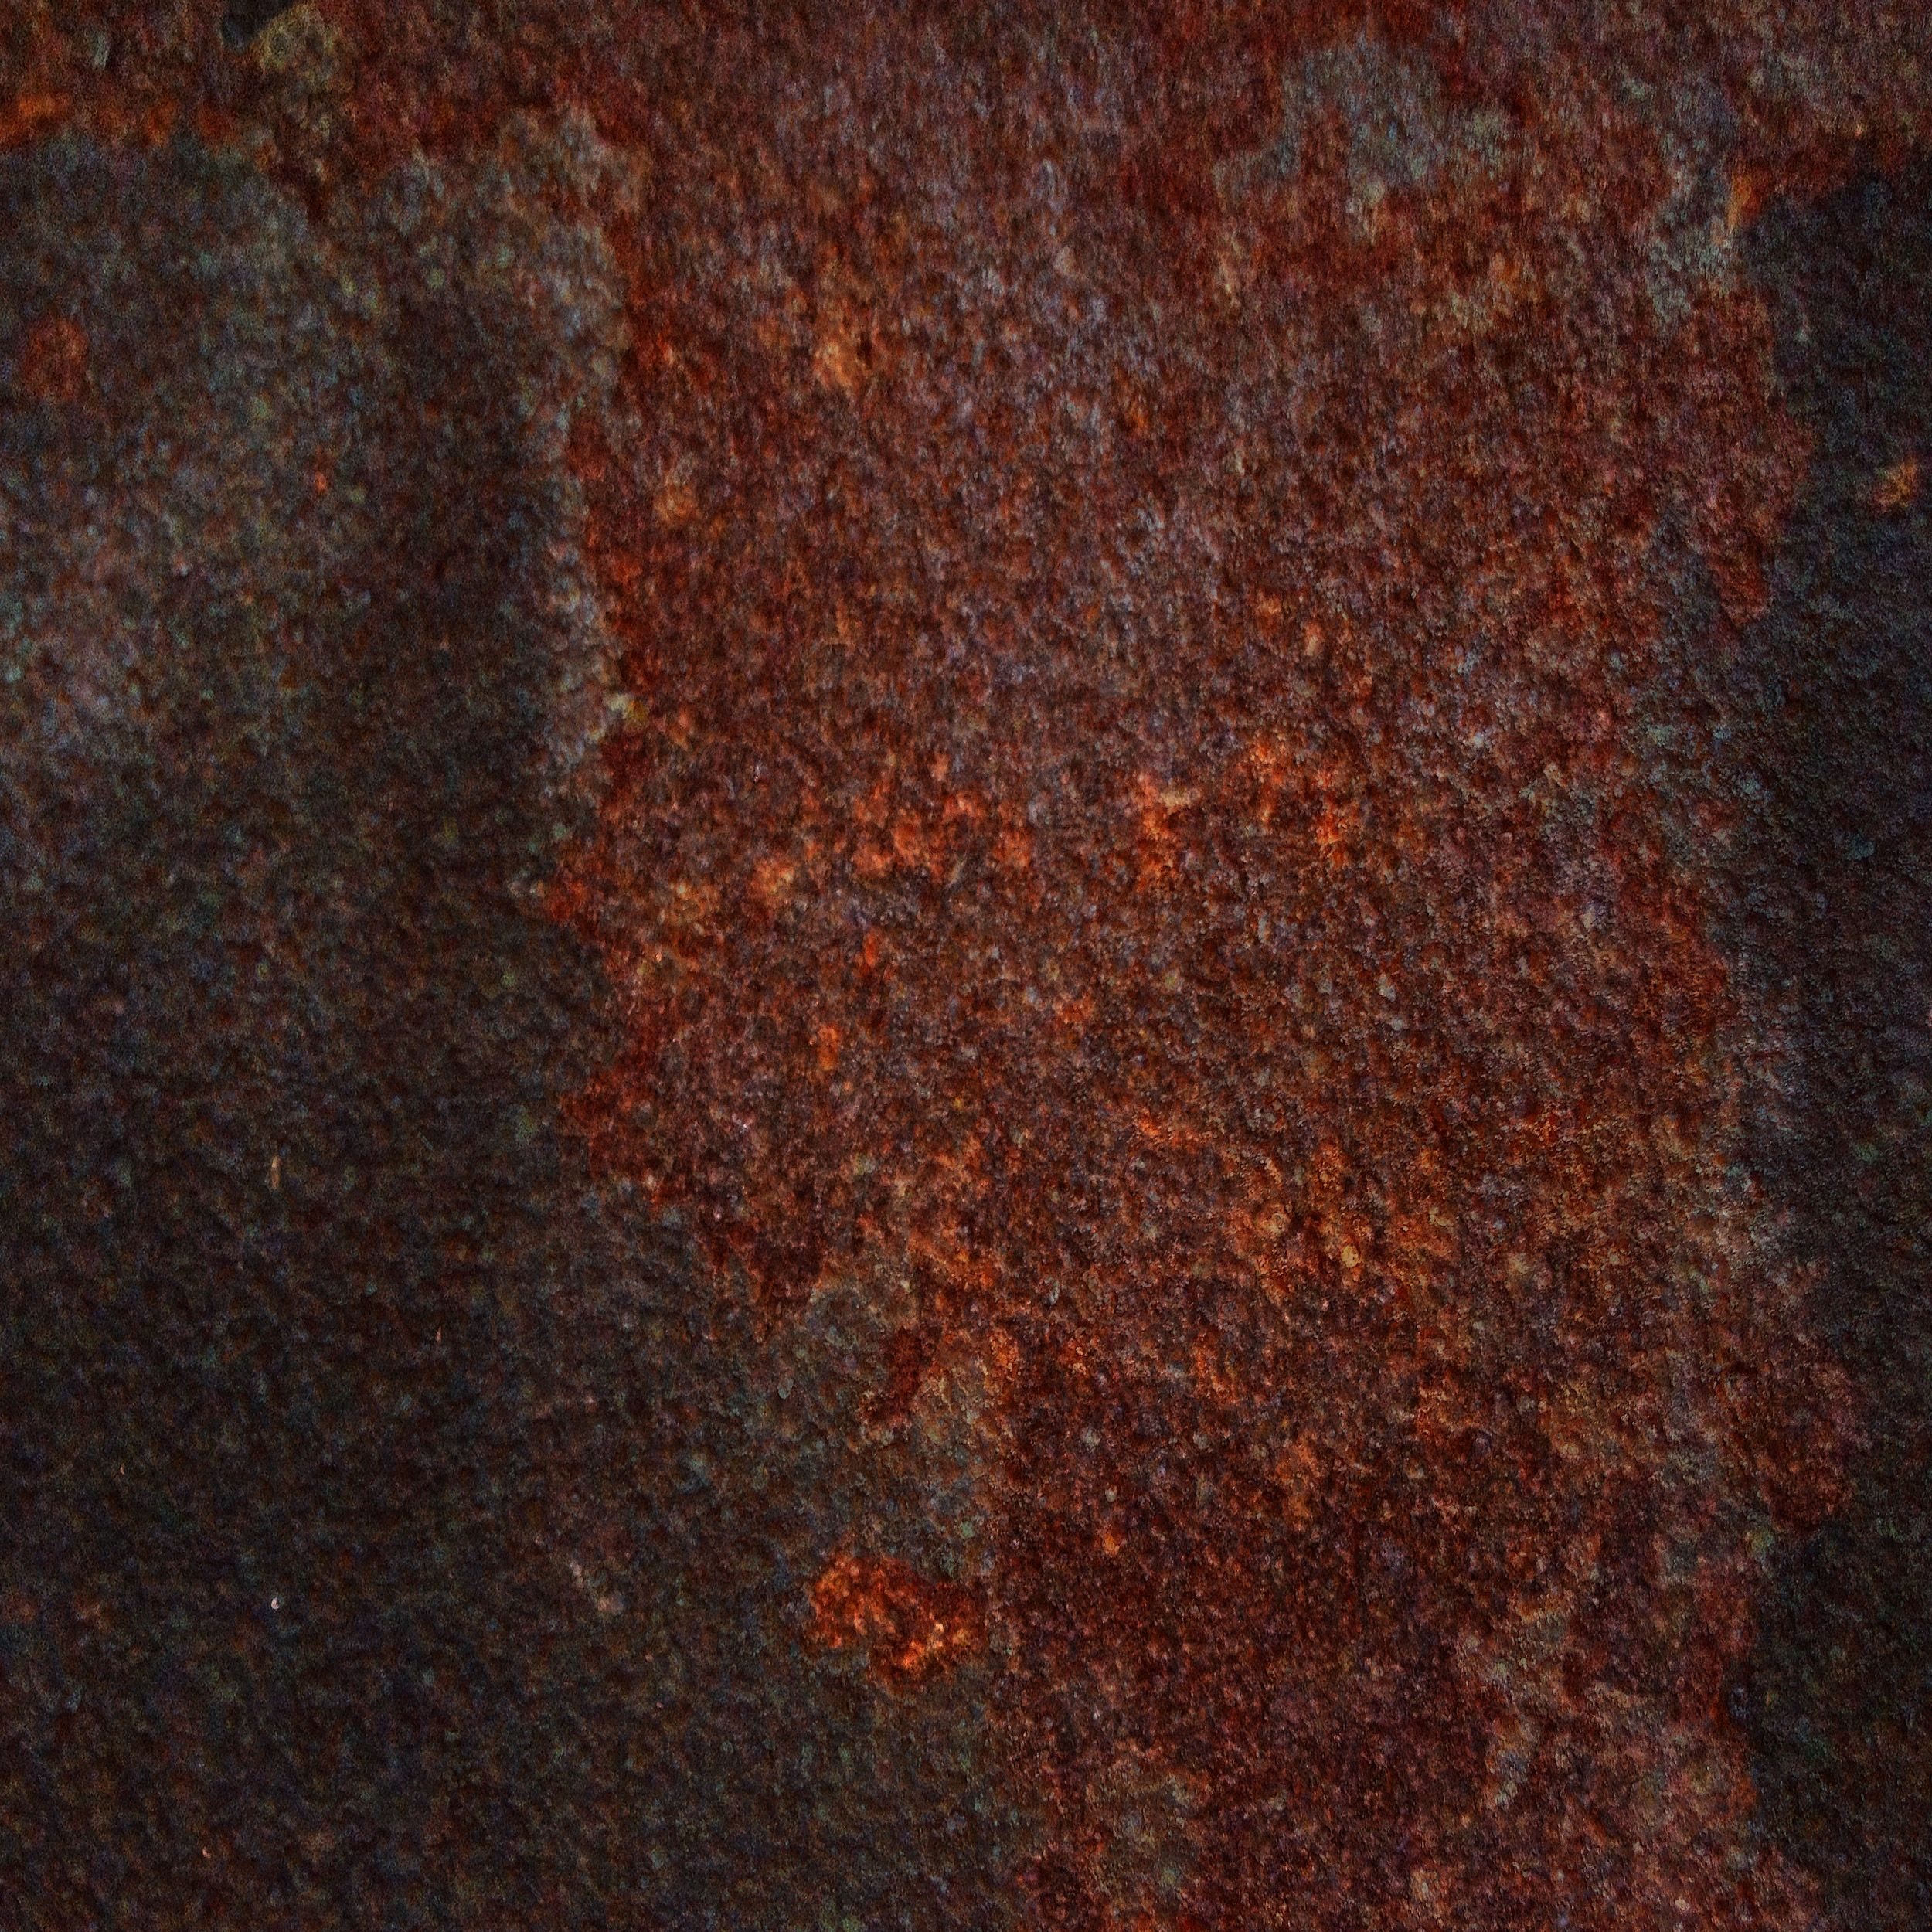 Rusted metal photo